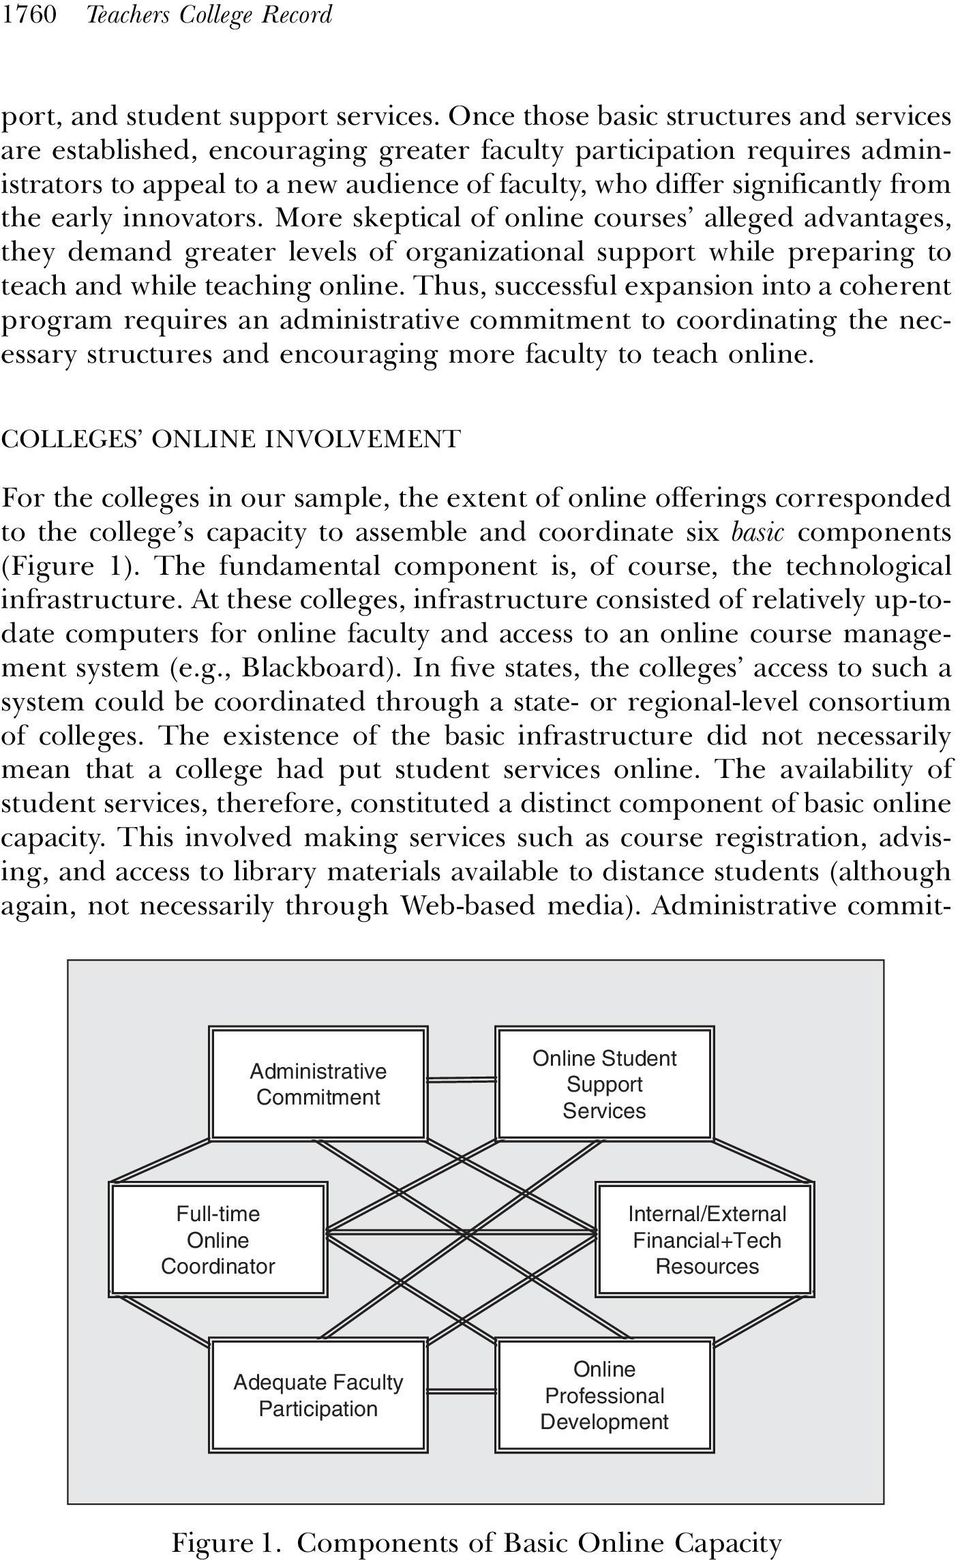 early innovators. More skeptical of online courses alleged advantages, they demand greater levels of organizational support while preparing to teach and while teaching online.